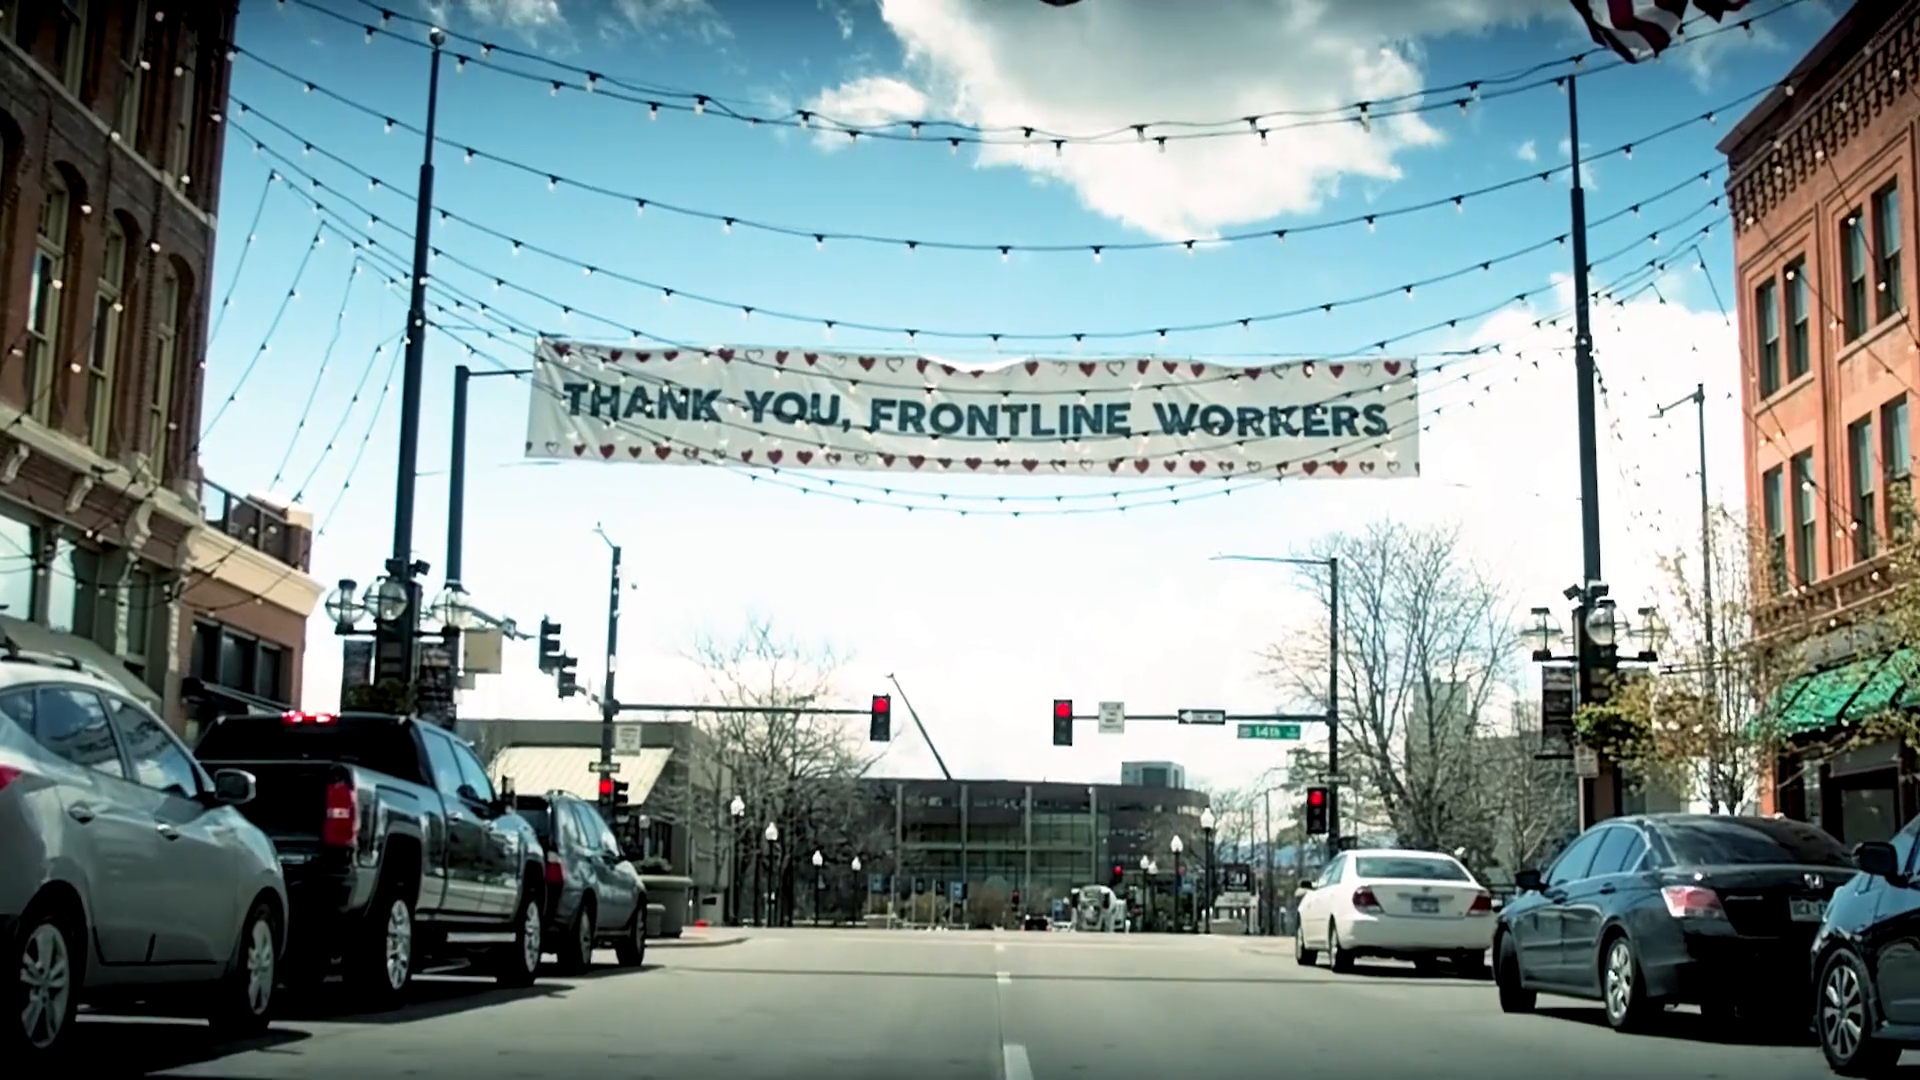 Thank you frontline workers!